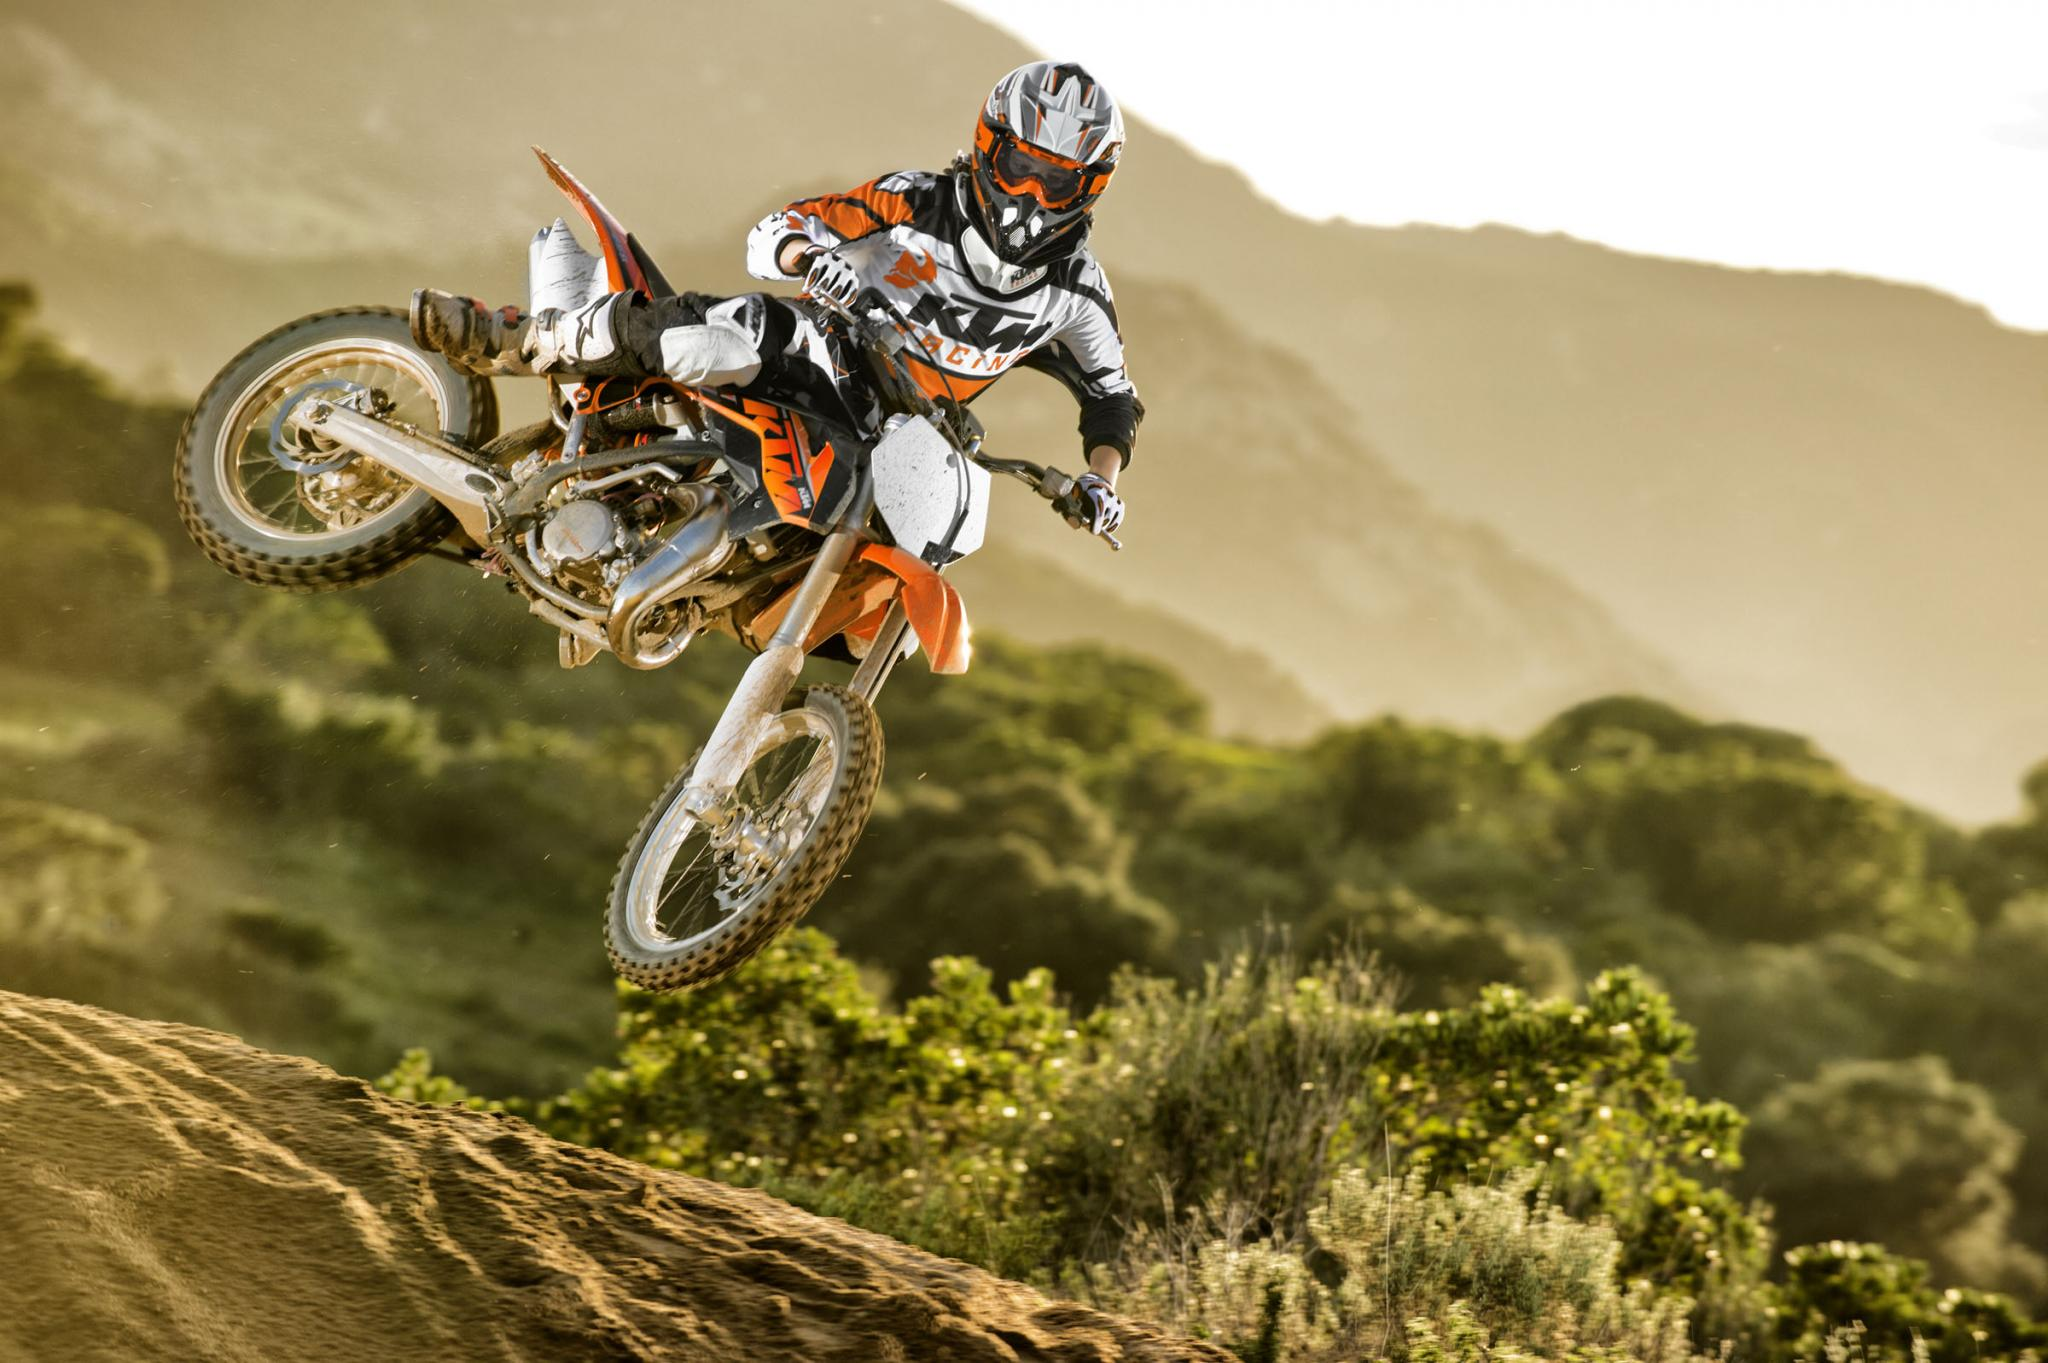 ktm sx sportminicycles 2014 action fotos On action bilder